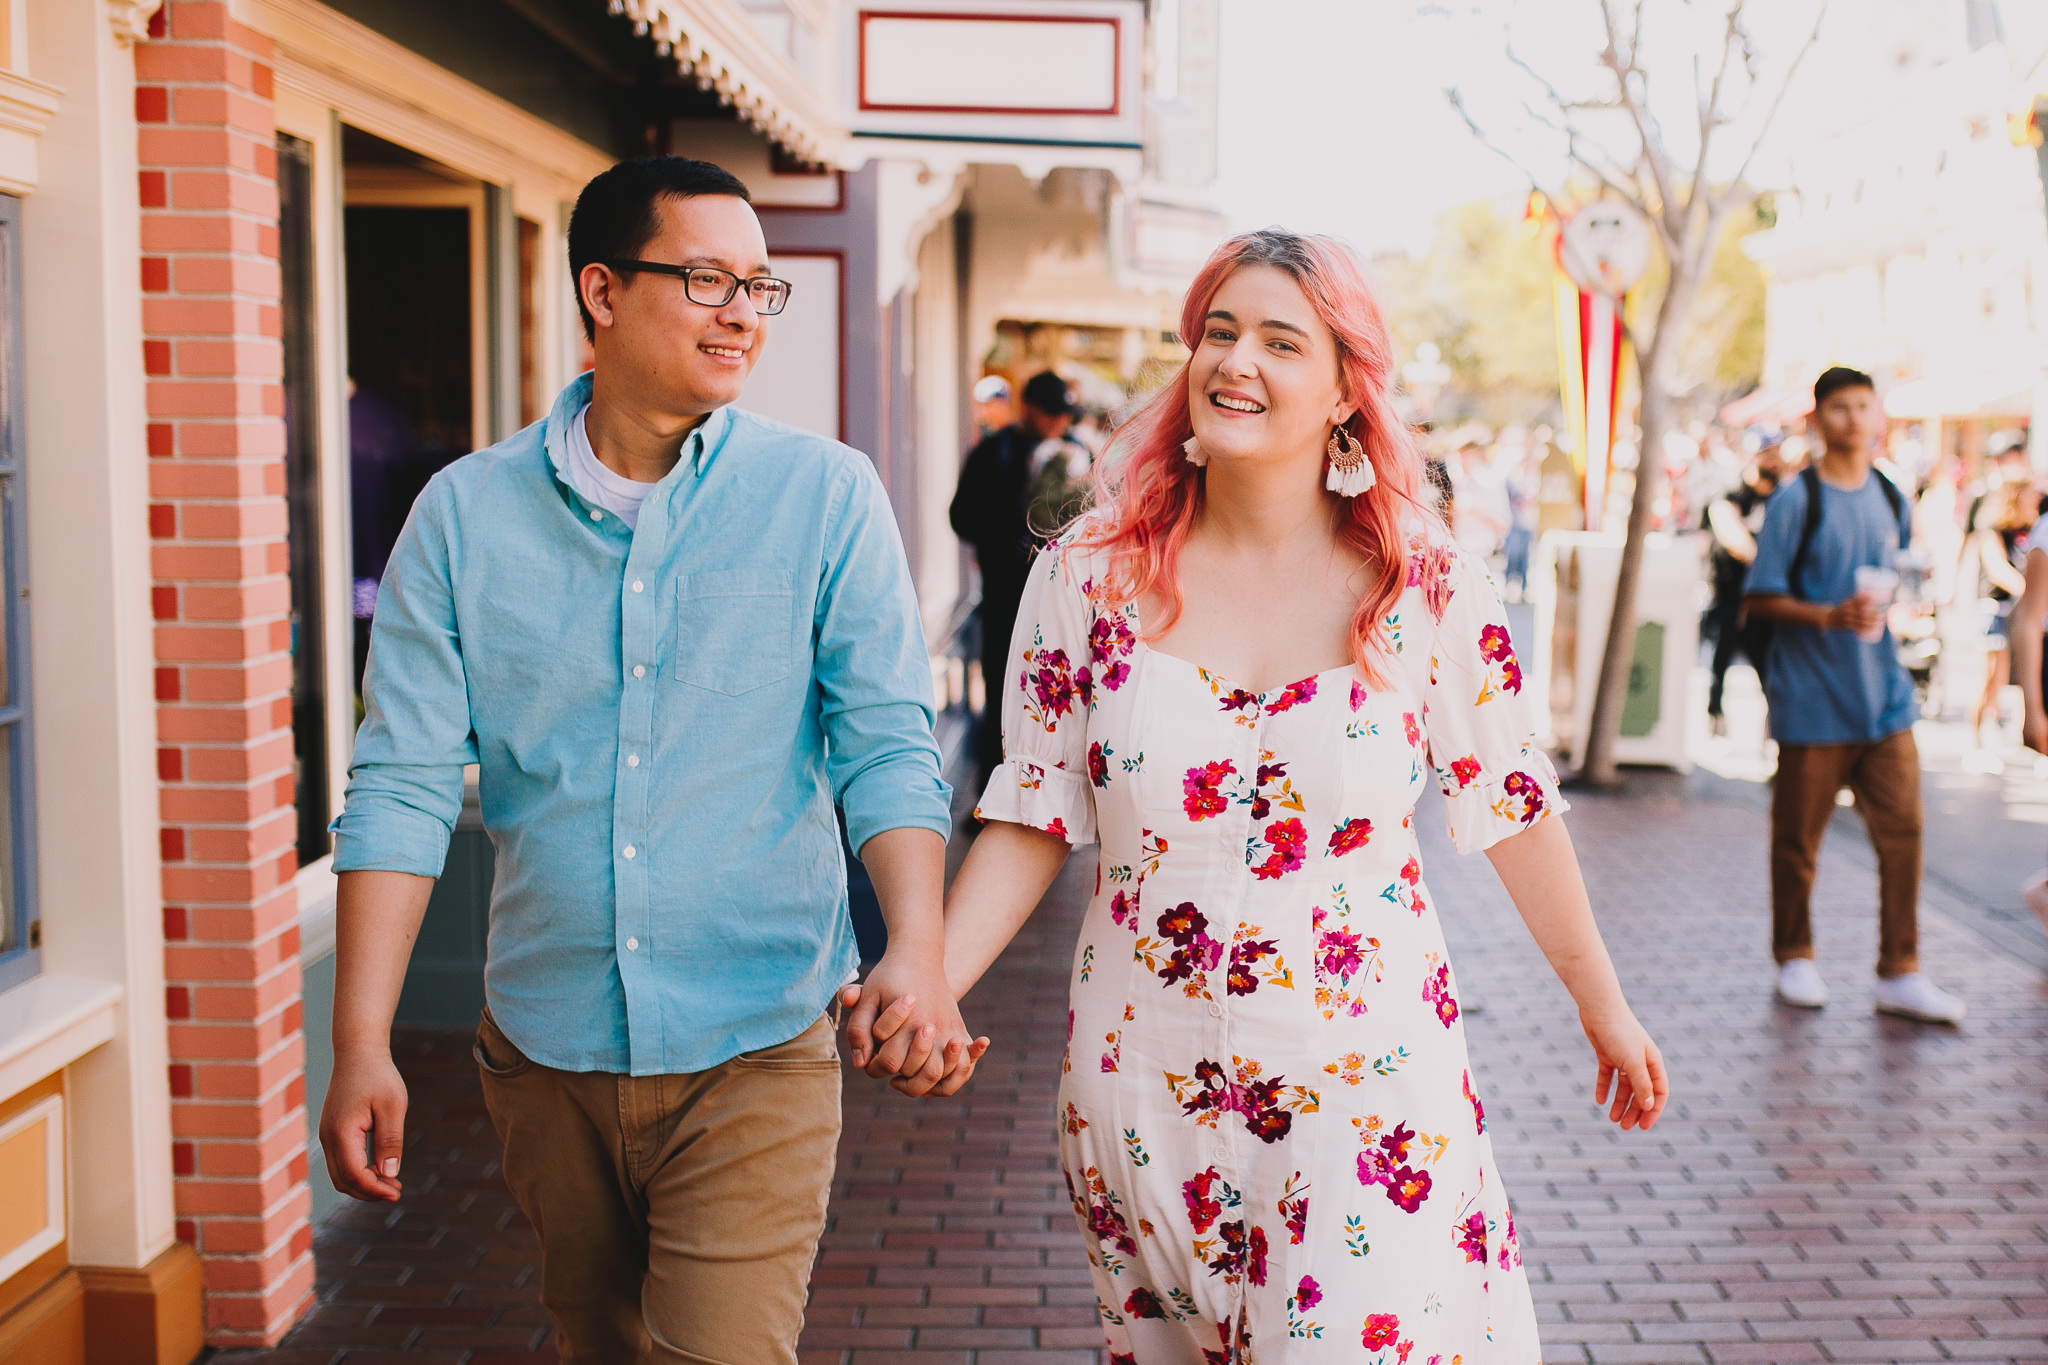 Archer Inspired Photography Disneyland Engagement Wedding Session Southern California Kayla and Kevin Lifestyle Documentary-154.jpg